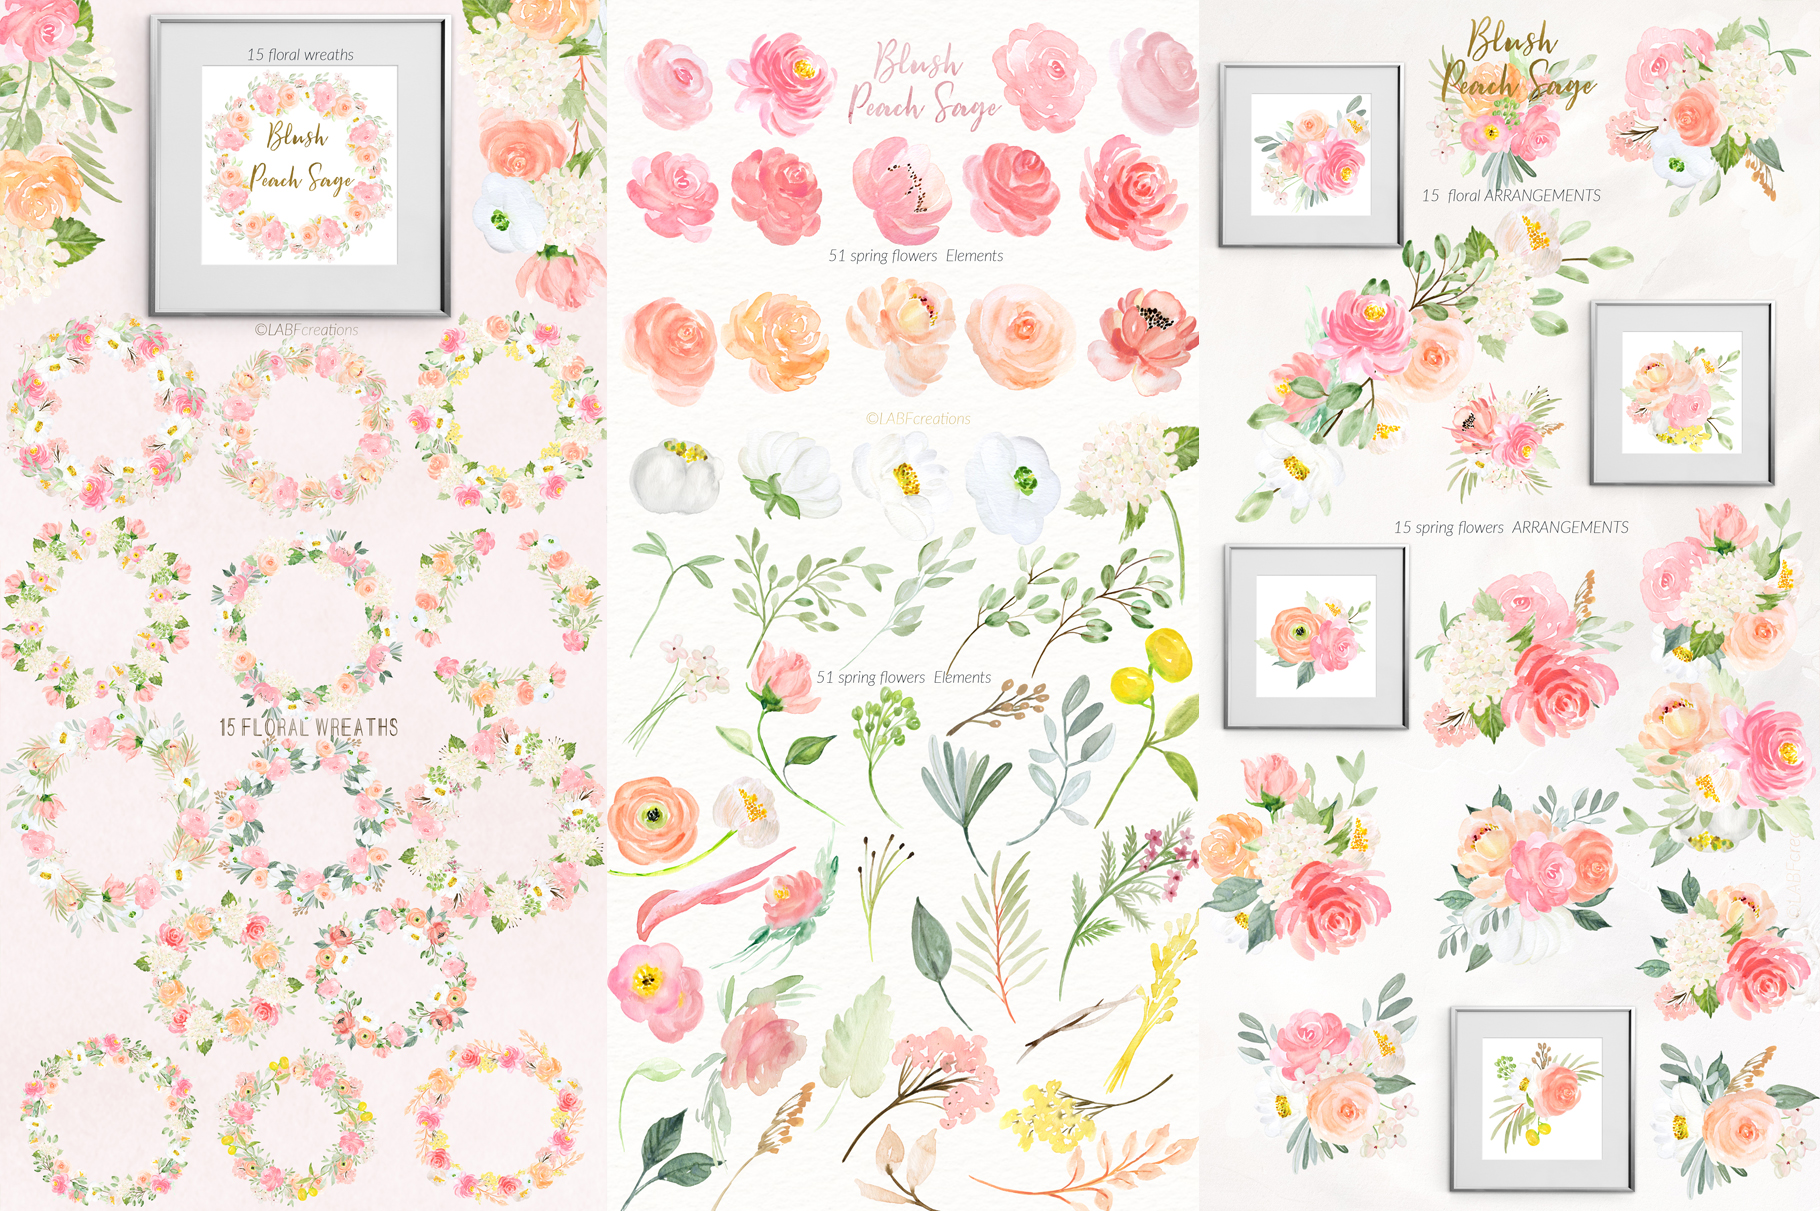 Blush Peach Sage Watercolor flowers clipart example image 8